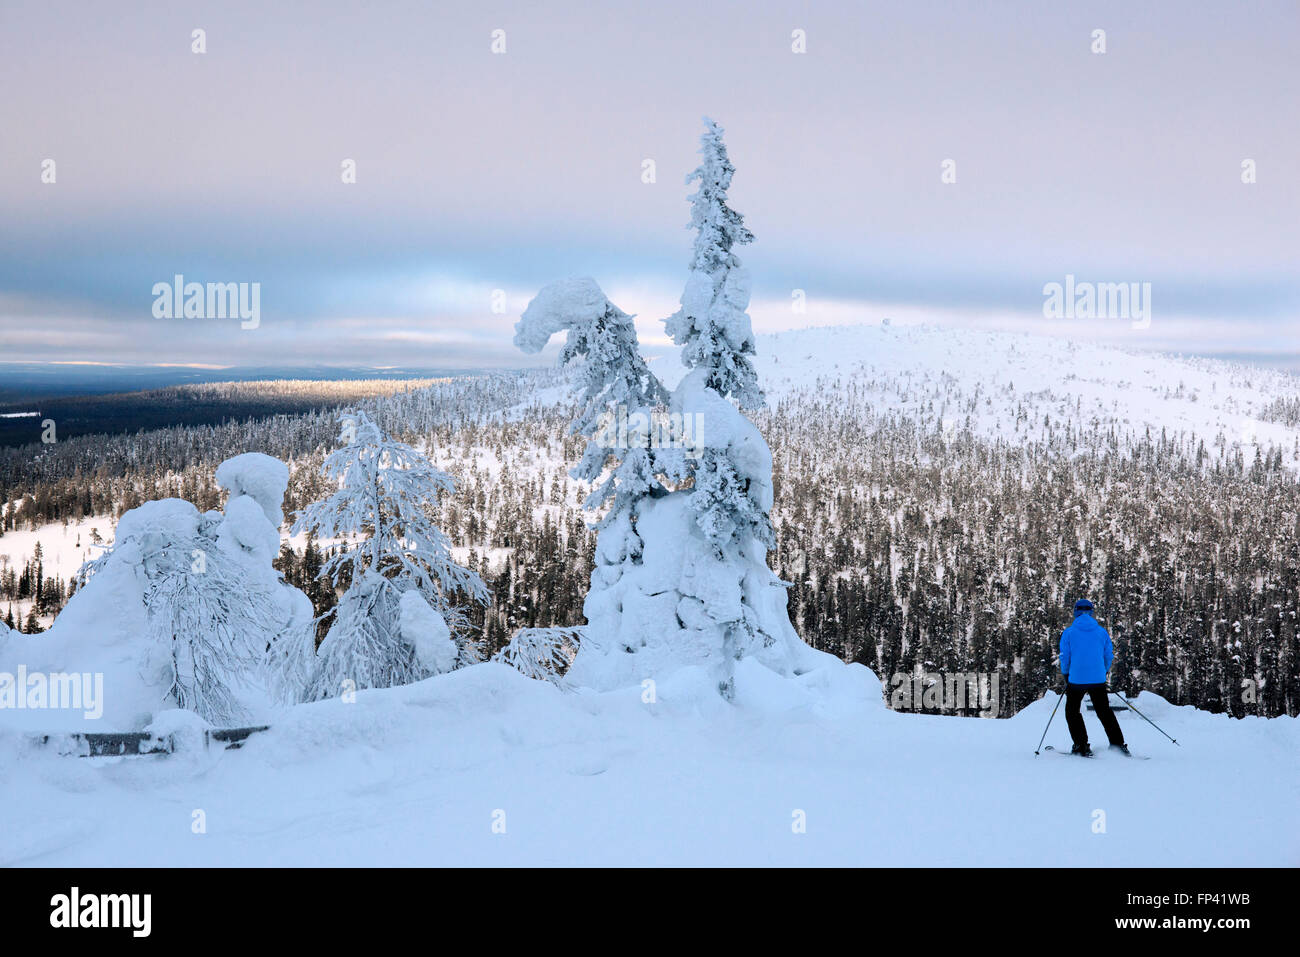 Heavy snow on the Salla fell. Salla ski resort. Deep in the wilderness of heavily snow laden coniferous trees and - Stock Image